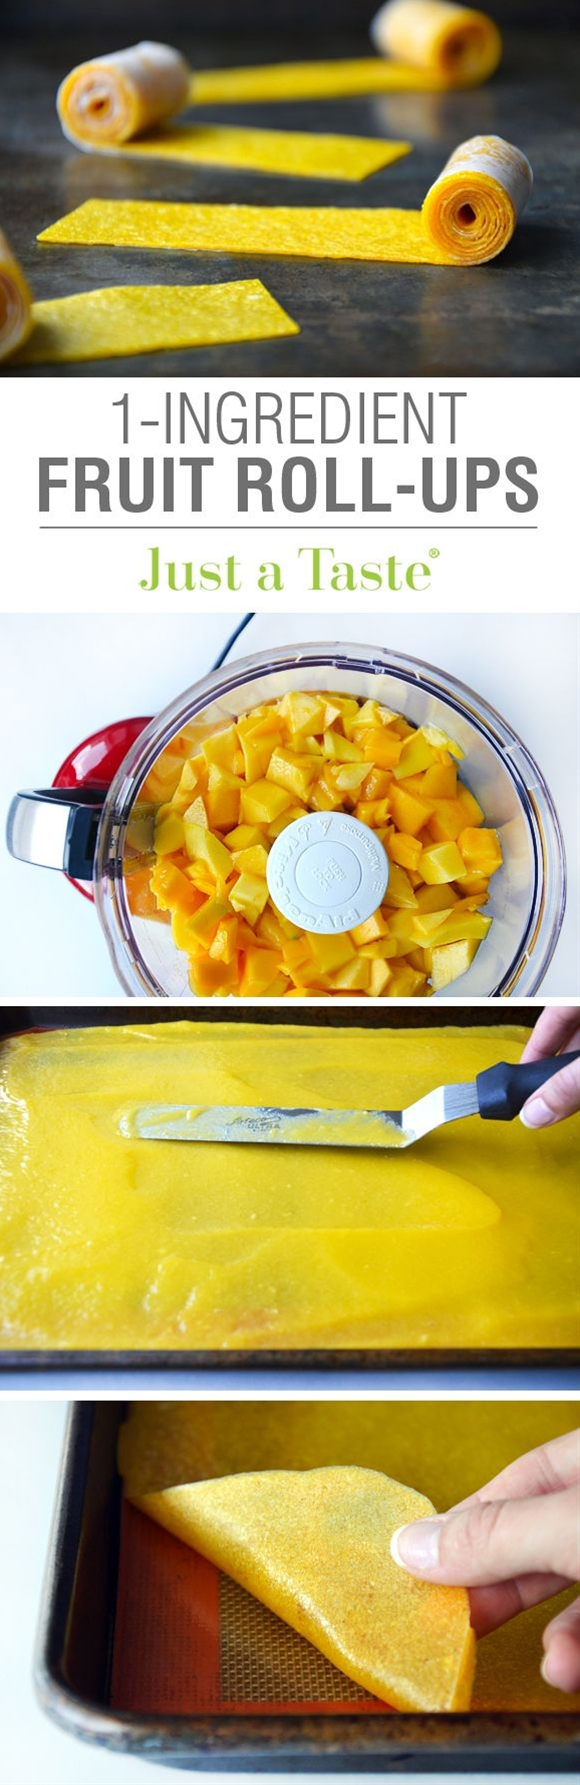 Ingredients:\n